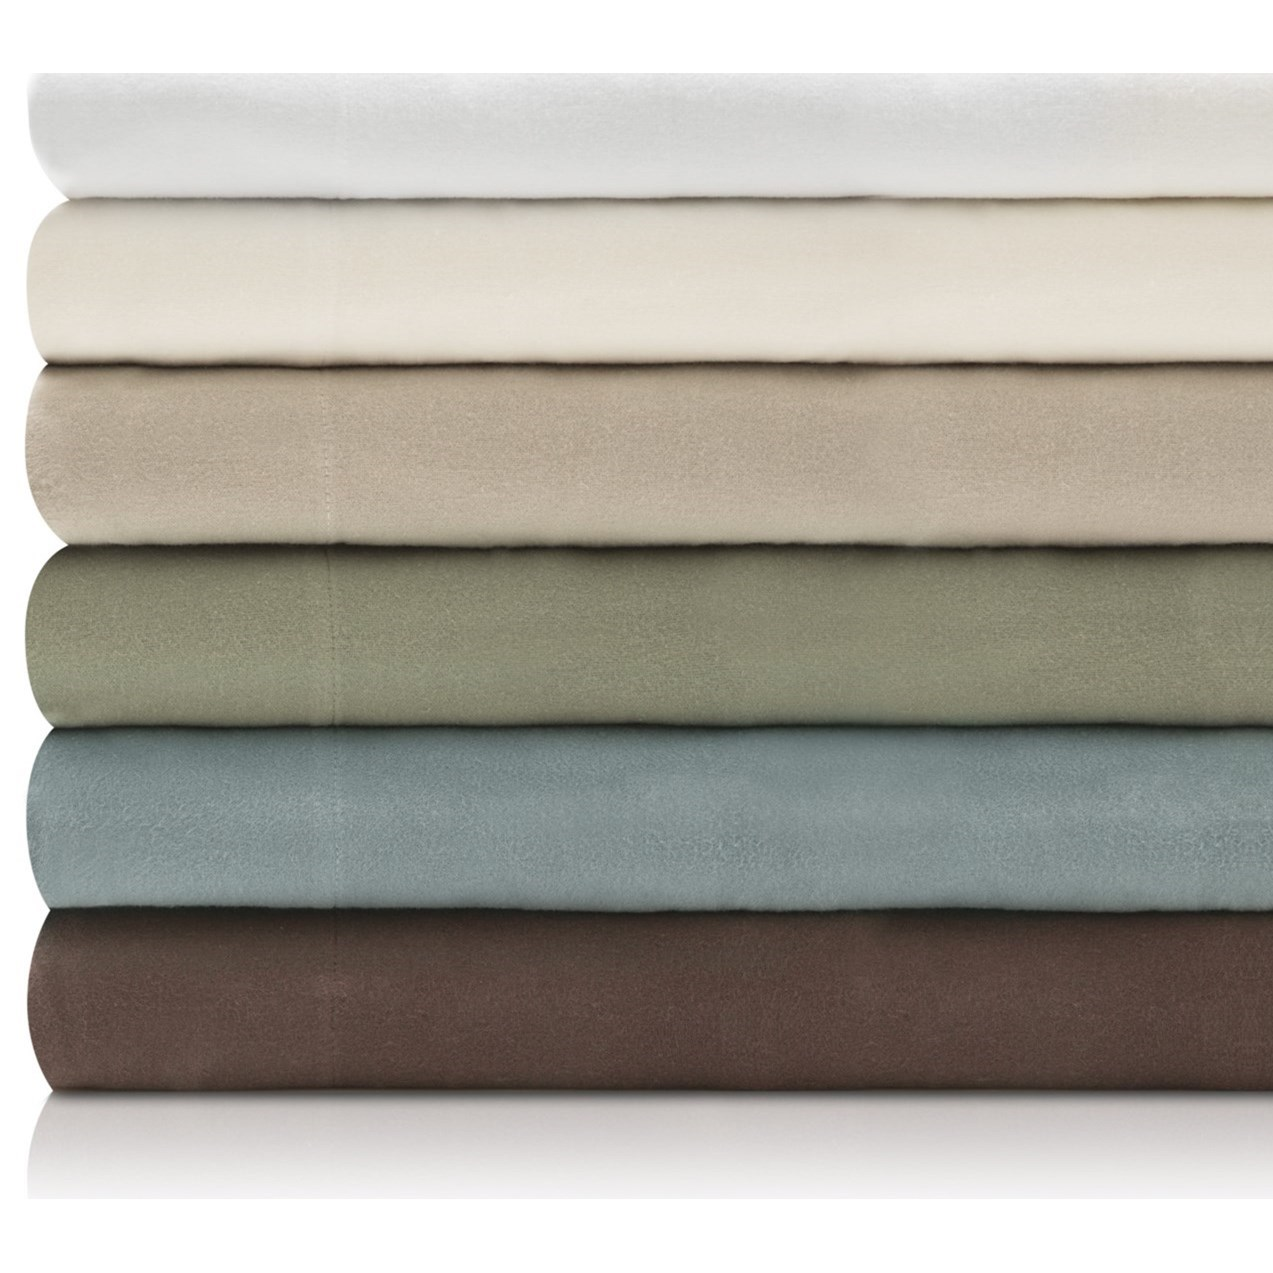 Malouf Portuguese Flannel Split King Woven™ Portuguese Flannel Sheet S - Item Number: WO19SKWHFS